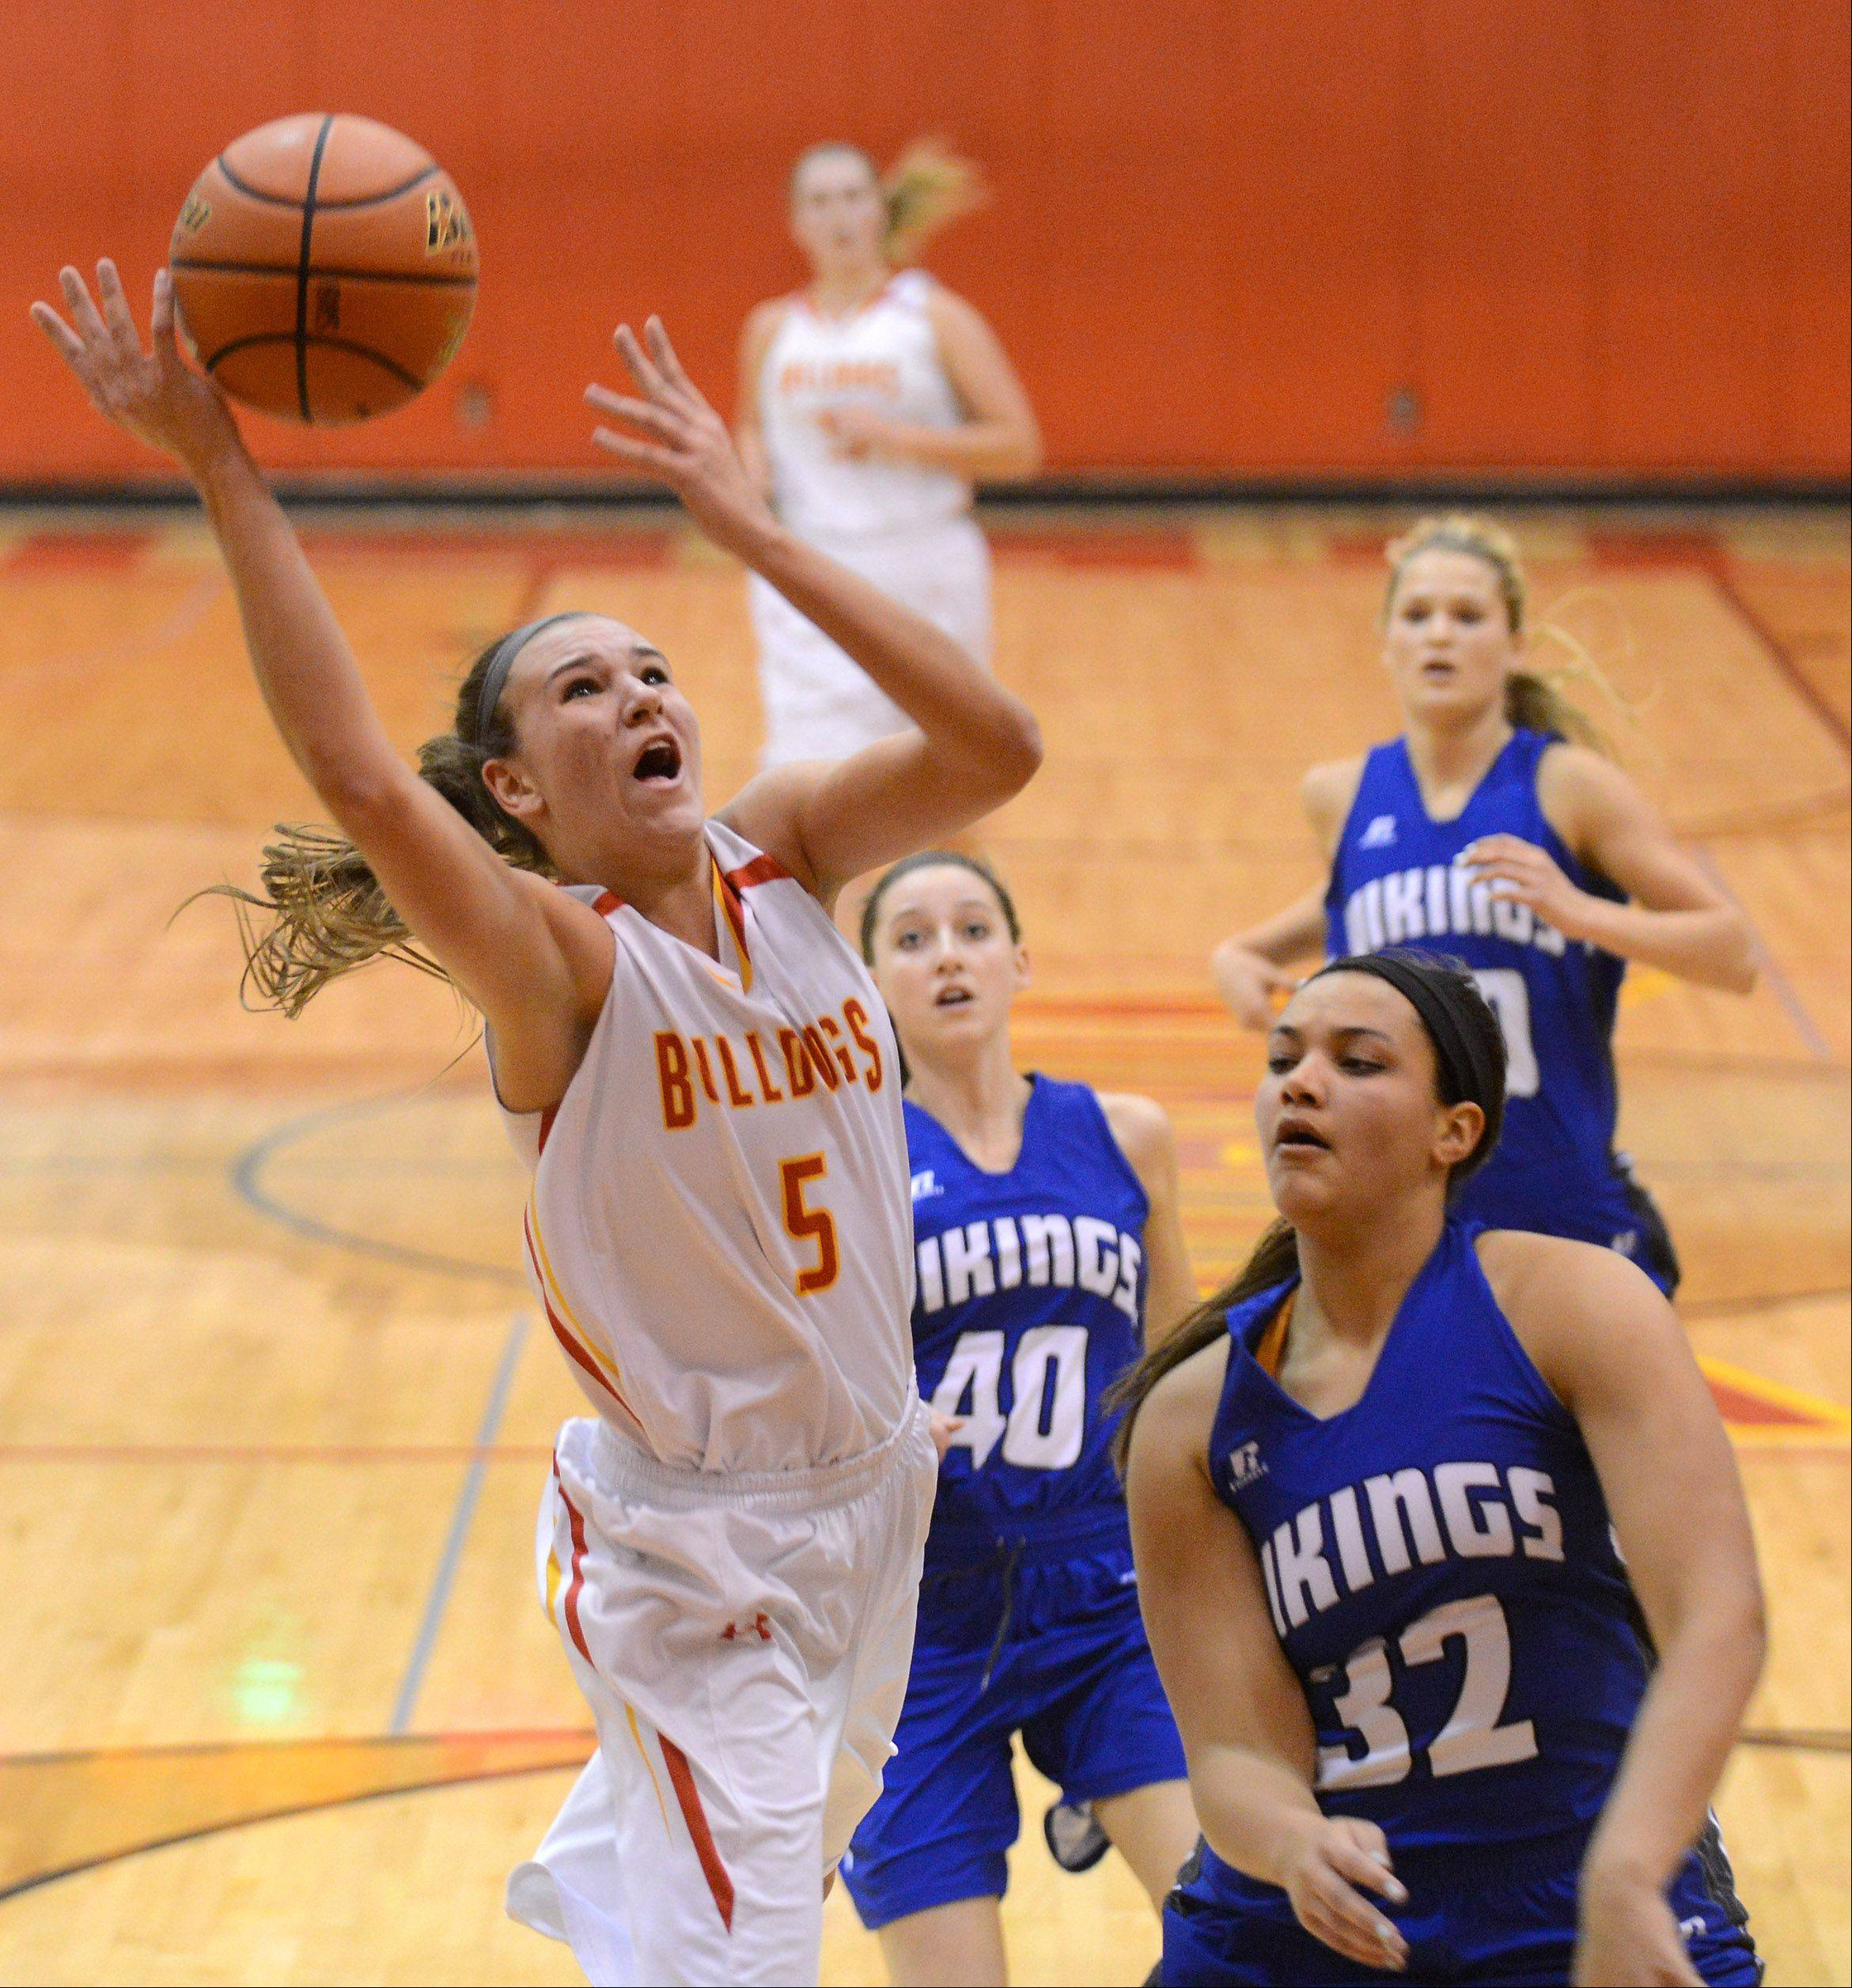 Batavia's Liza Fruendt (5) shoots and scores in front of Geneva's Sidney Santos (32) during Friday's game in Batavia.